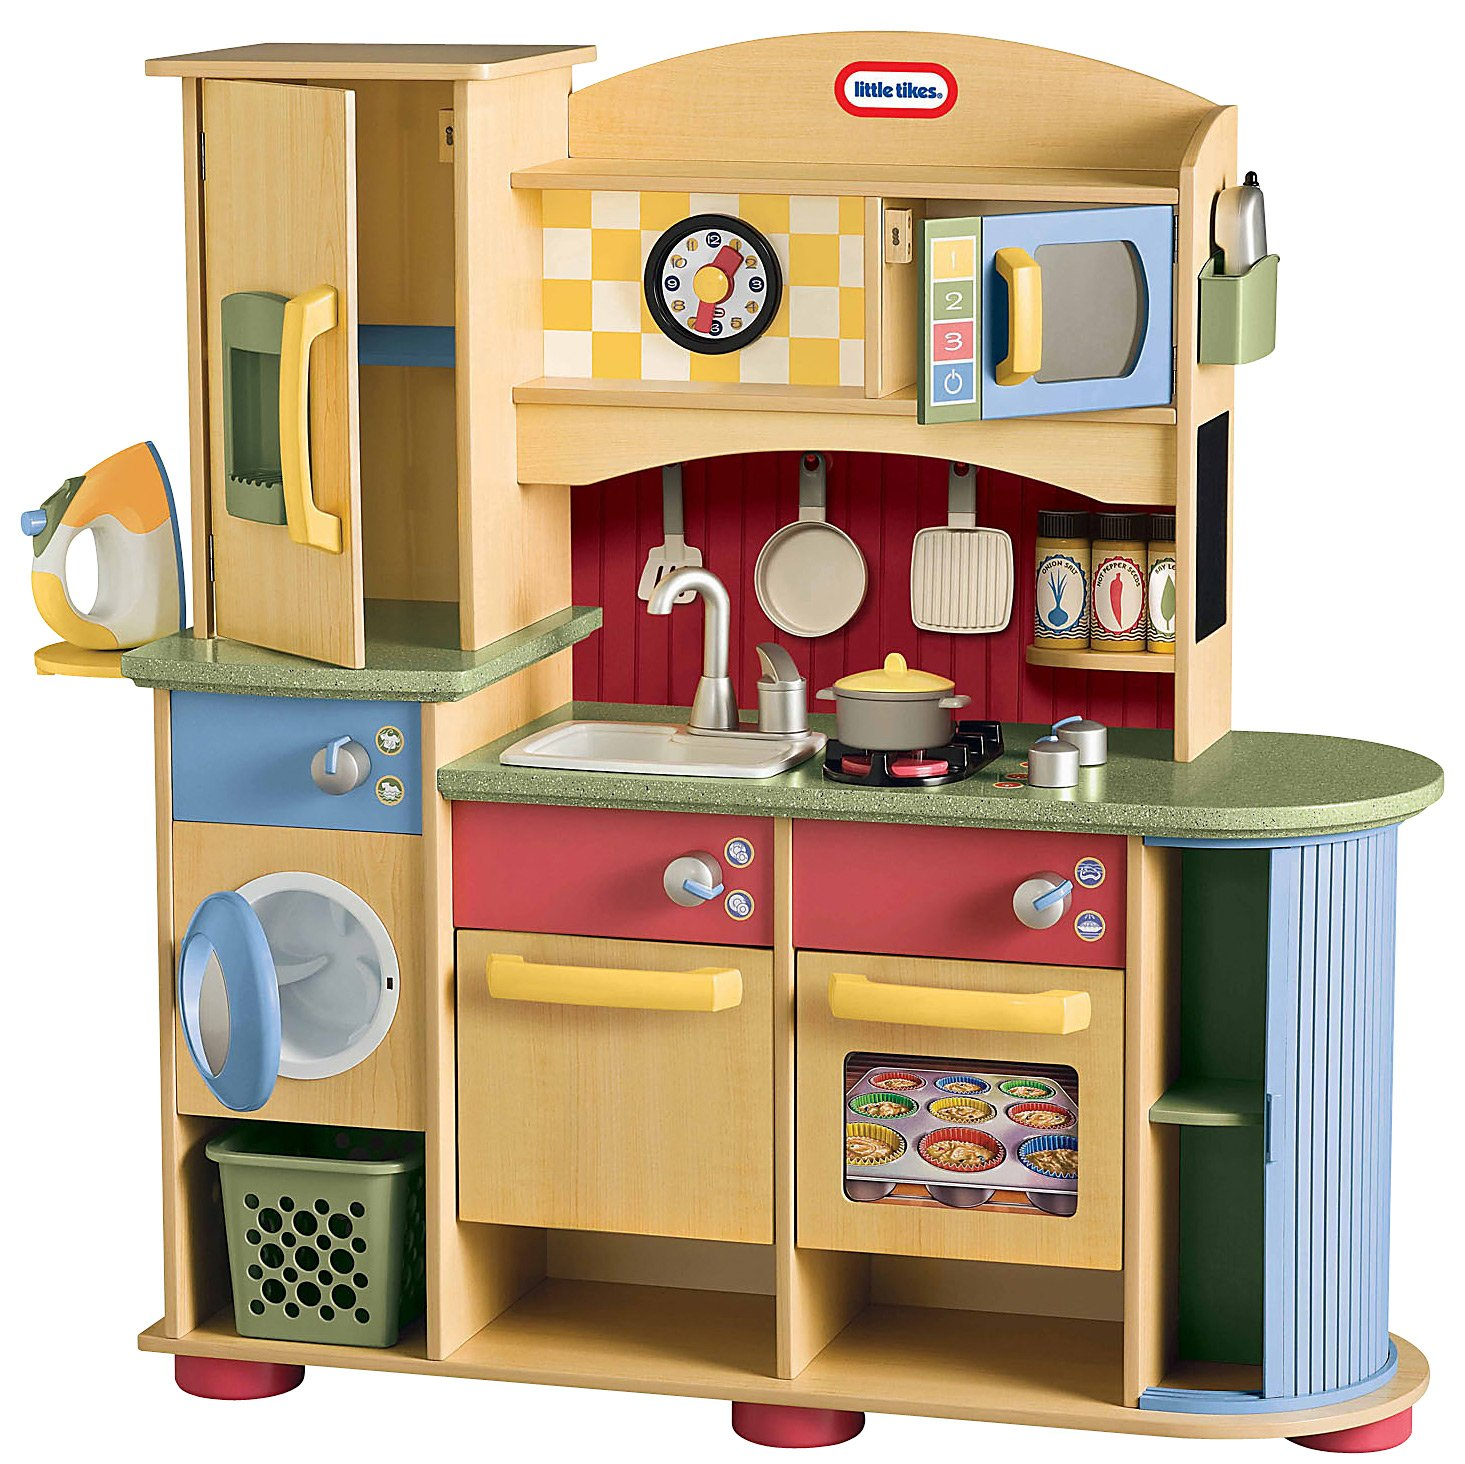 Little tikes deluxe wooden kitchen and laundry center for Kitchen kitchen set